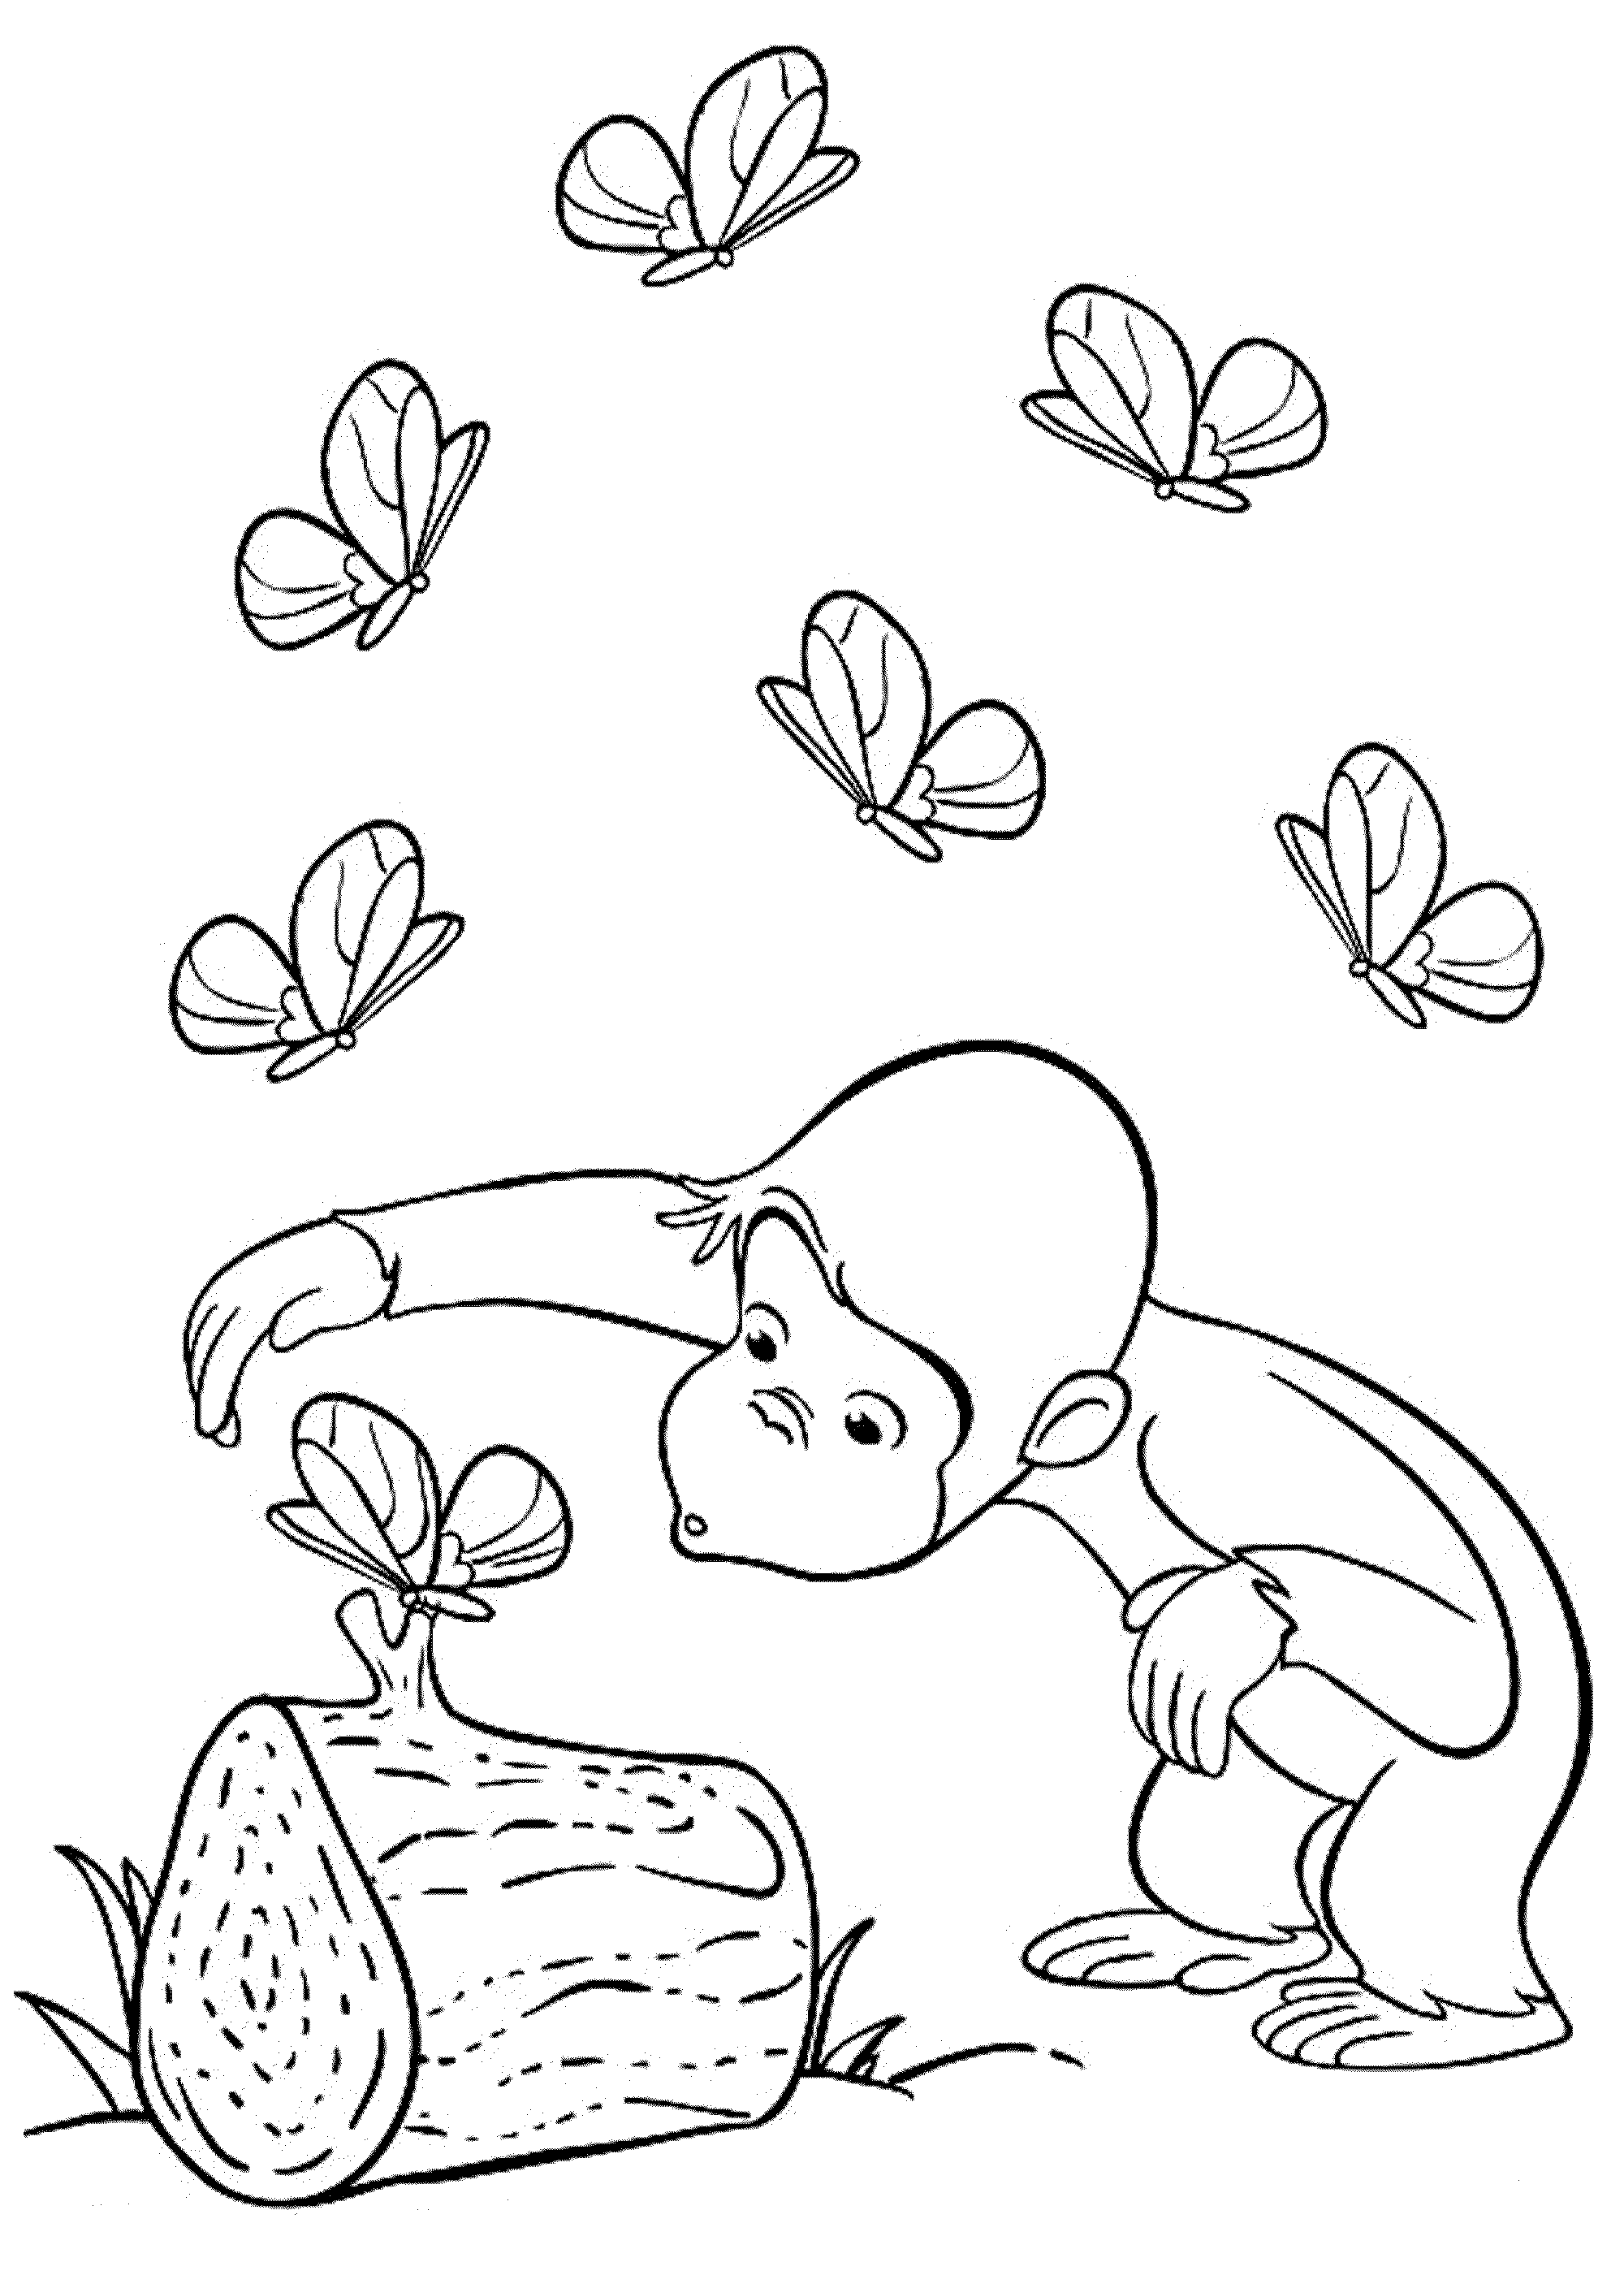 curious george coloring pages - photo#7